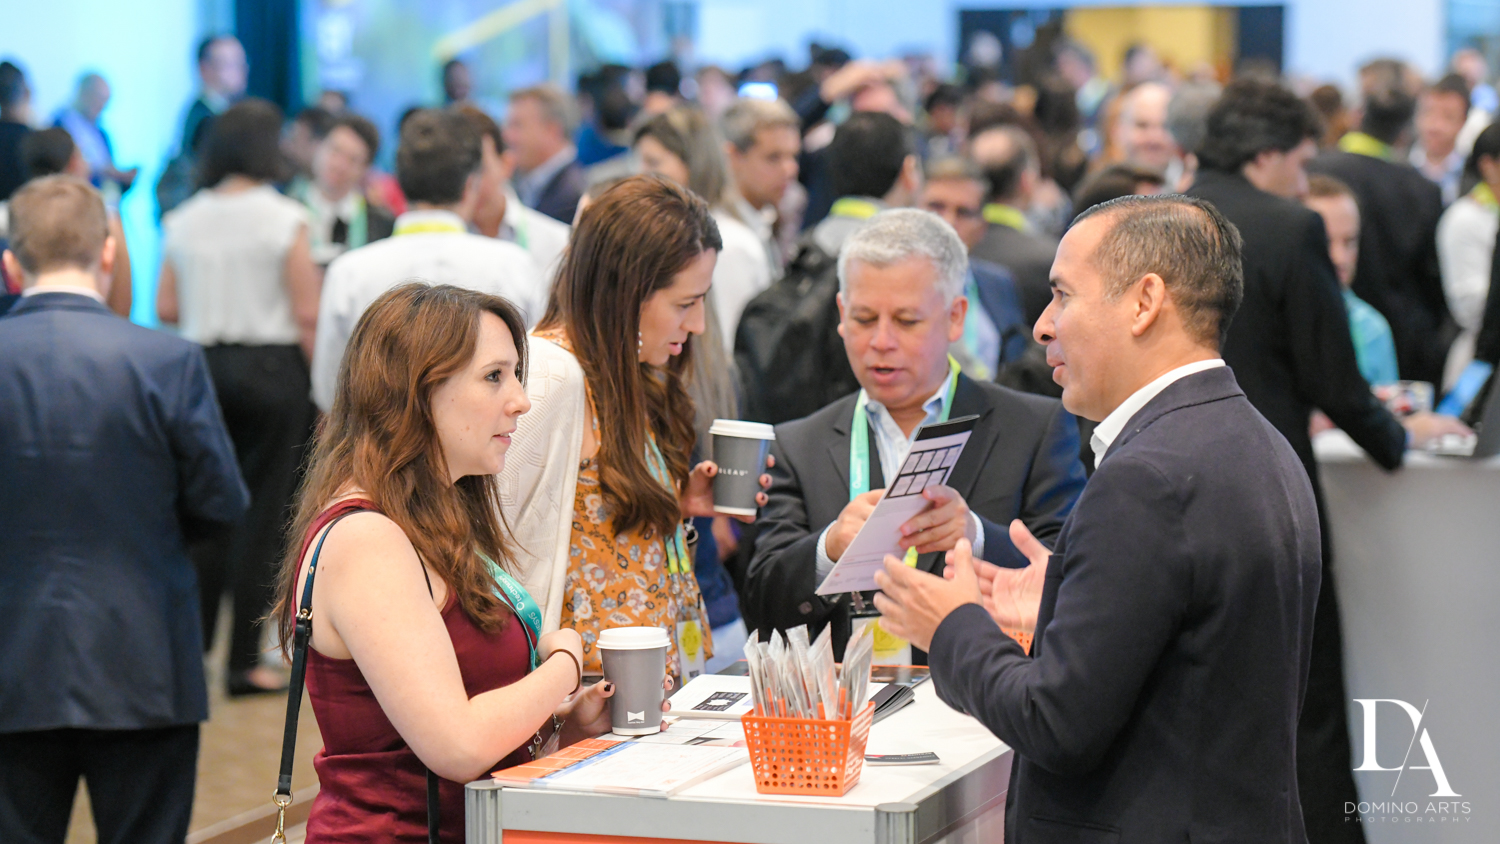 socializing at Fintech Americas Banking Conference Miami by Domino Arts Photography